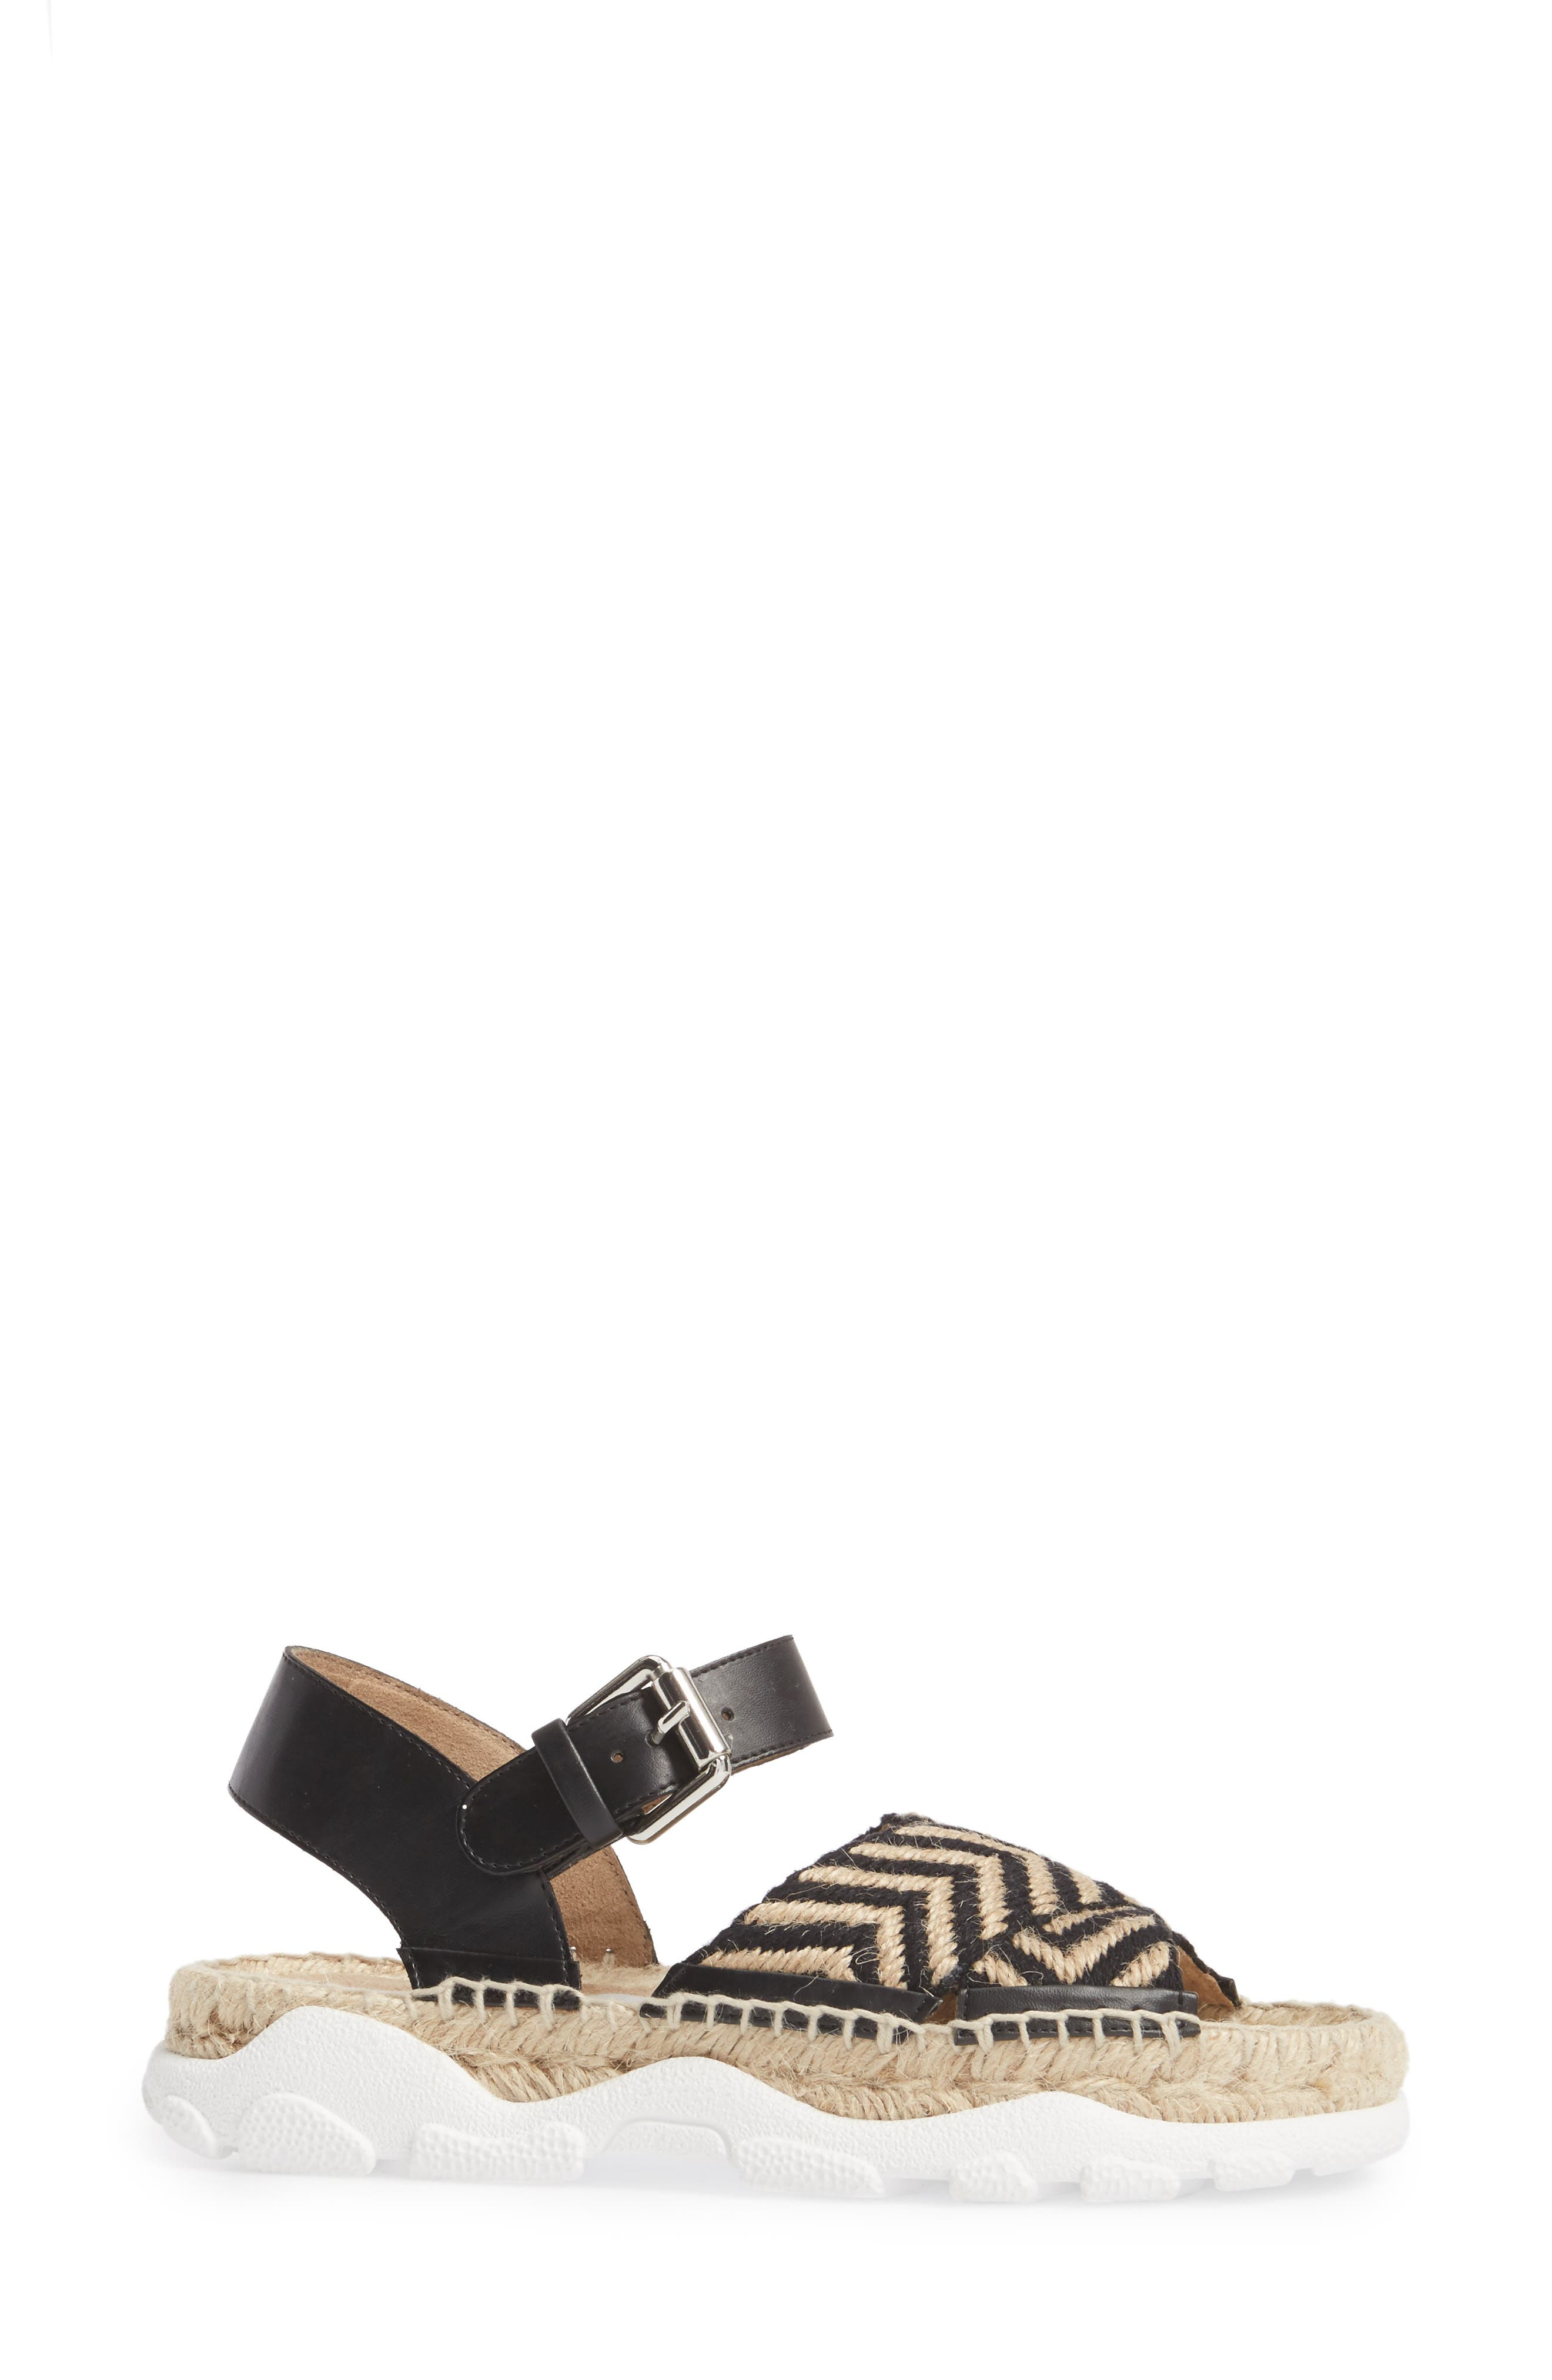 Grooved Chevron Sandal,                             Alternate thumbnail 3, color,                             007